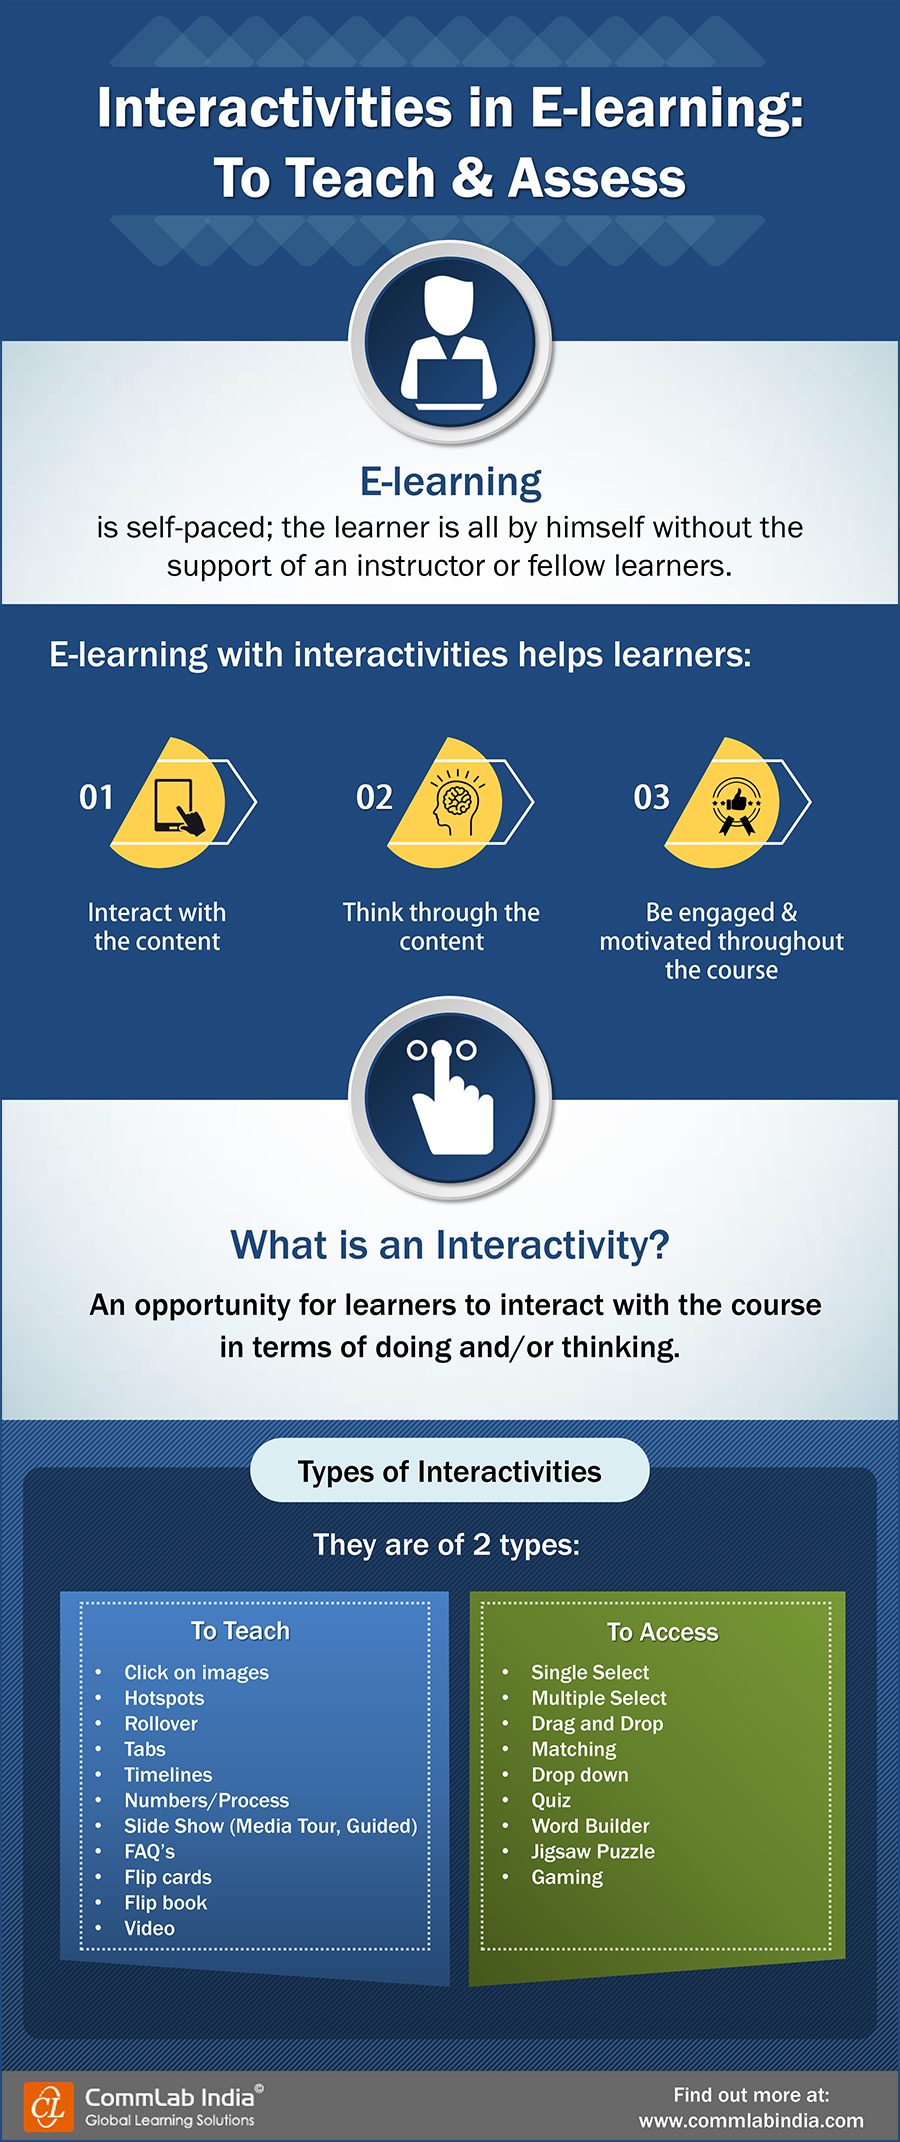 Interactivities in E-learning: To Teach & Assess [Infographic]